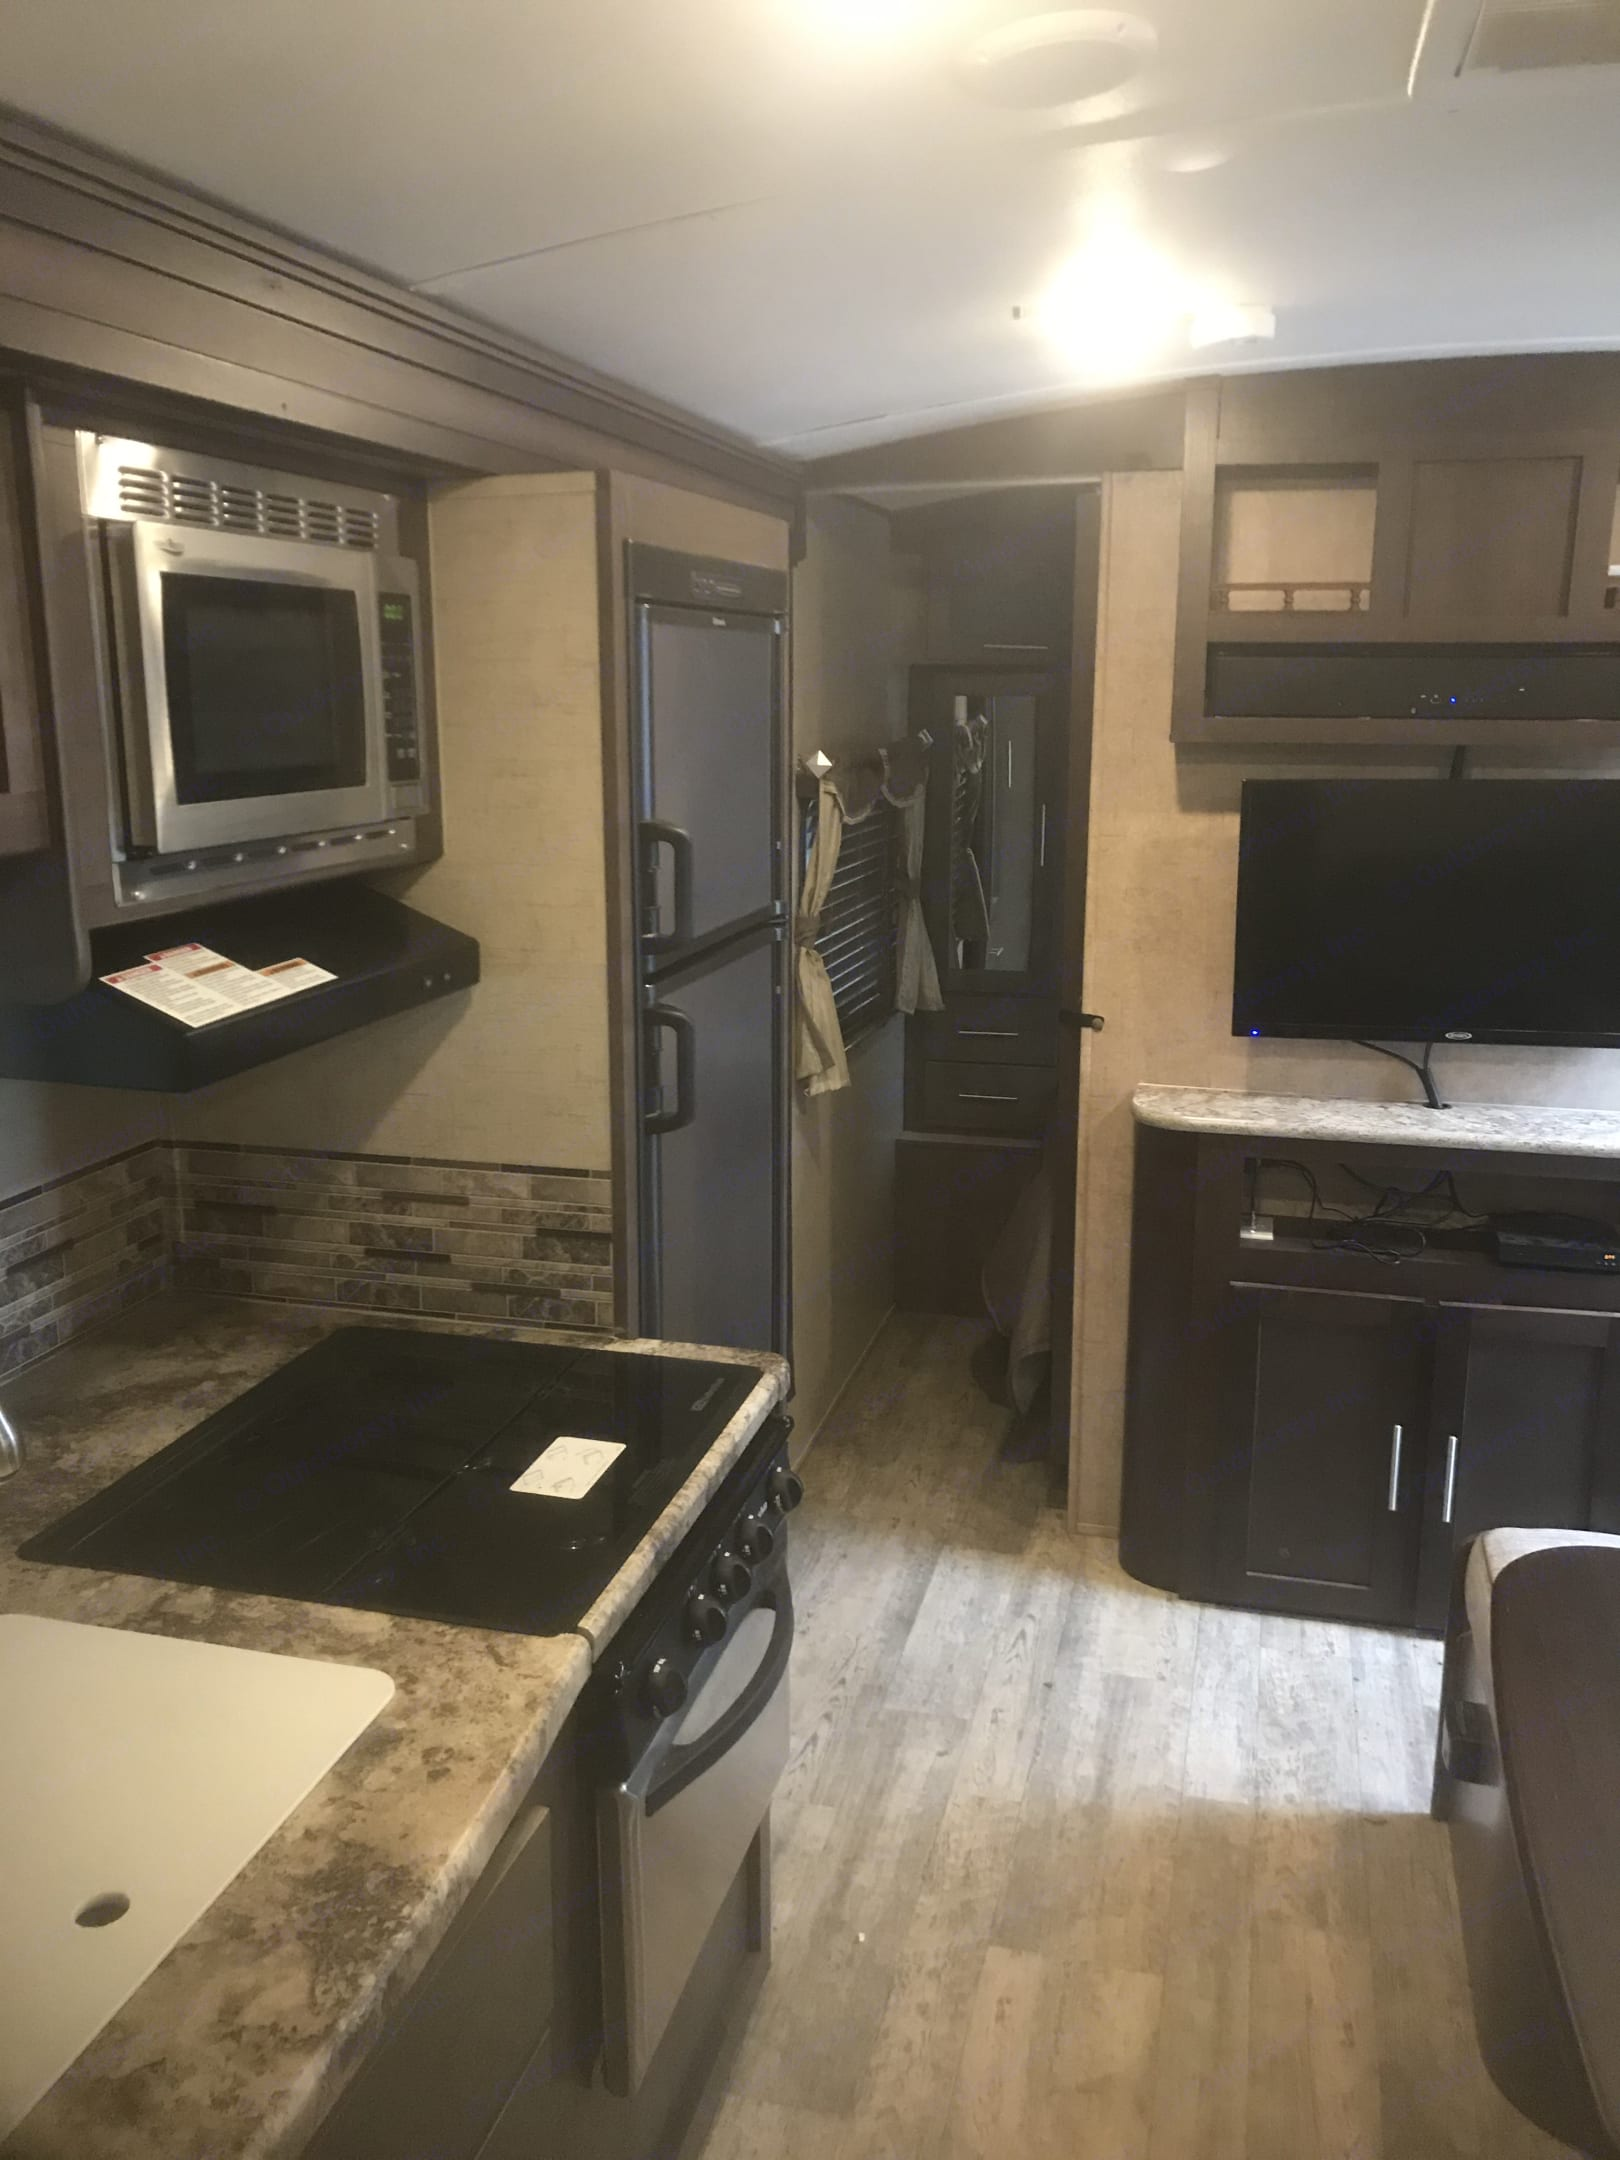 Lots of space in the living room. Forest River Surveyor 2016